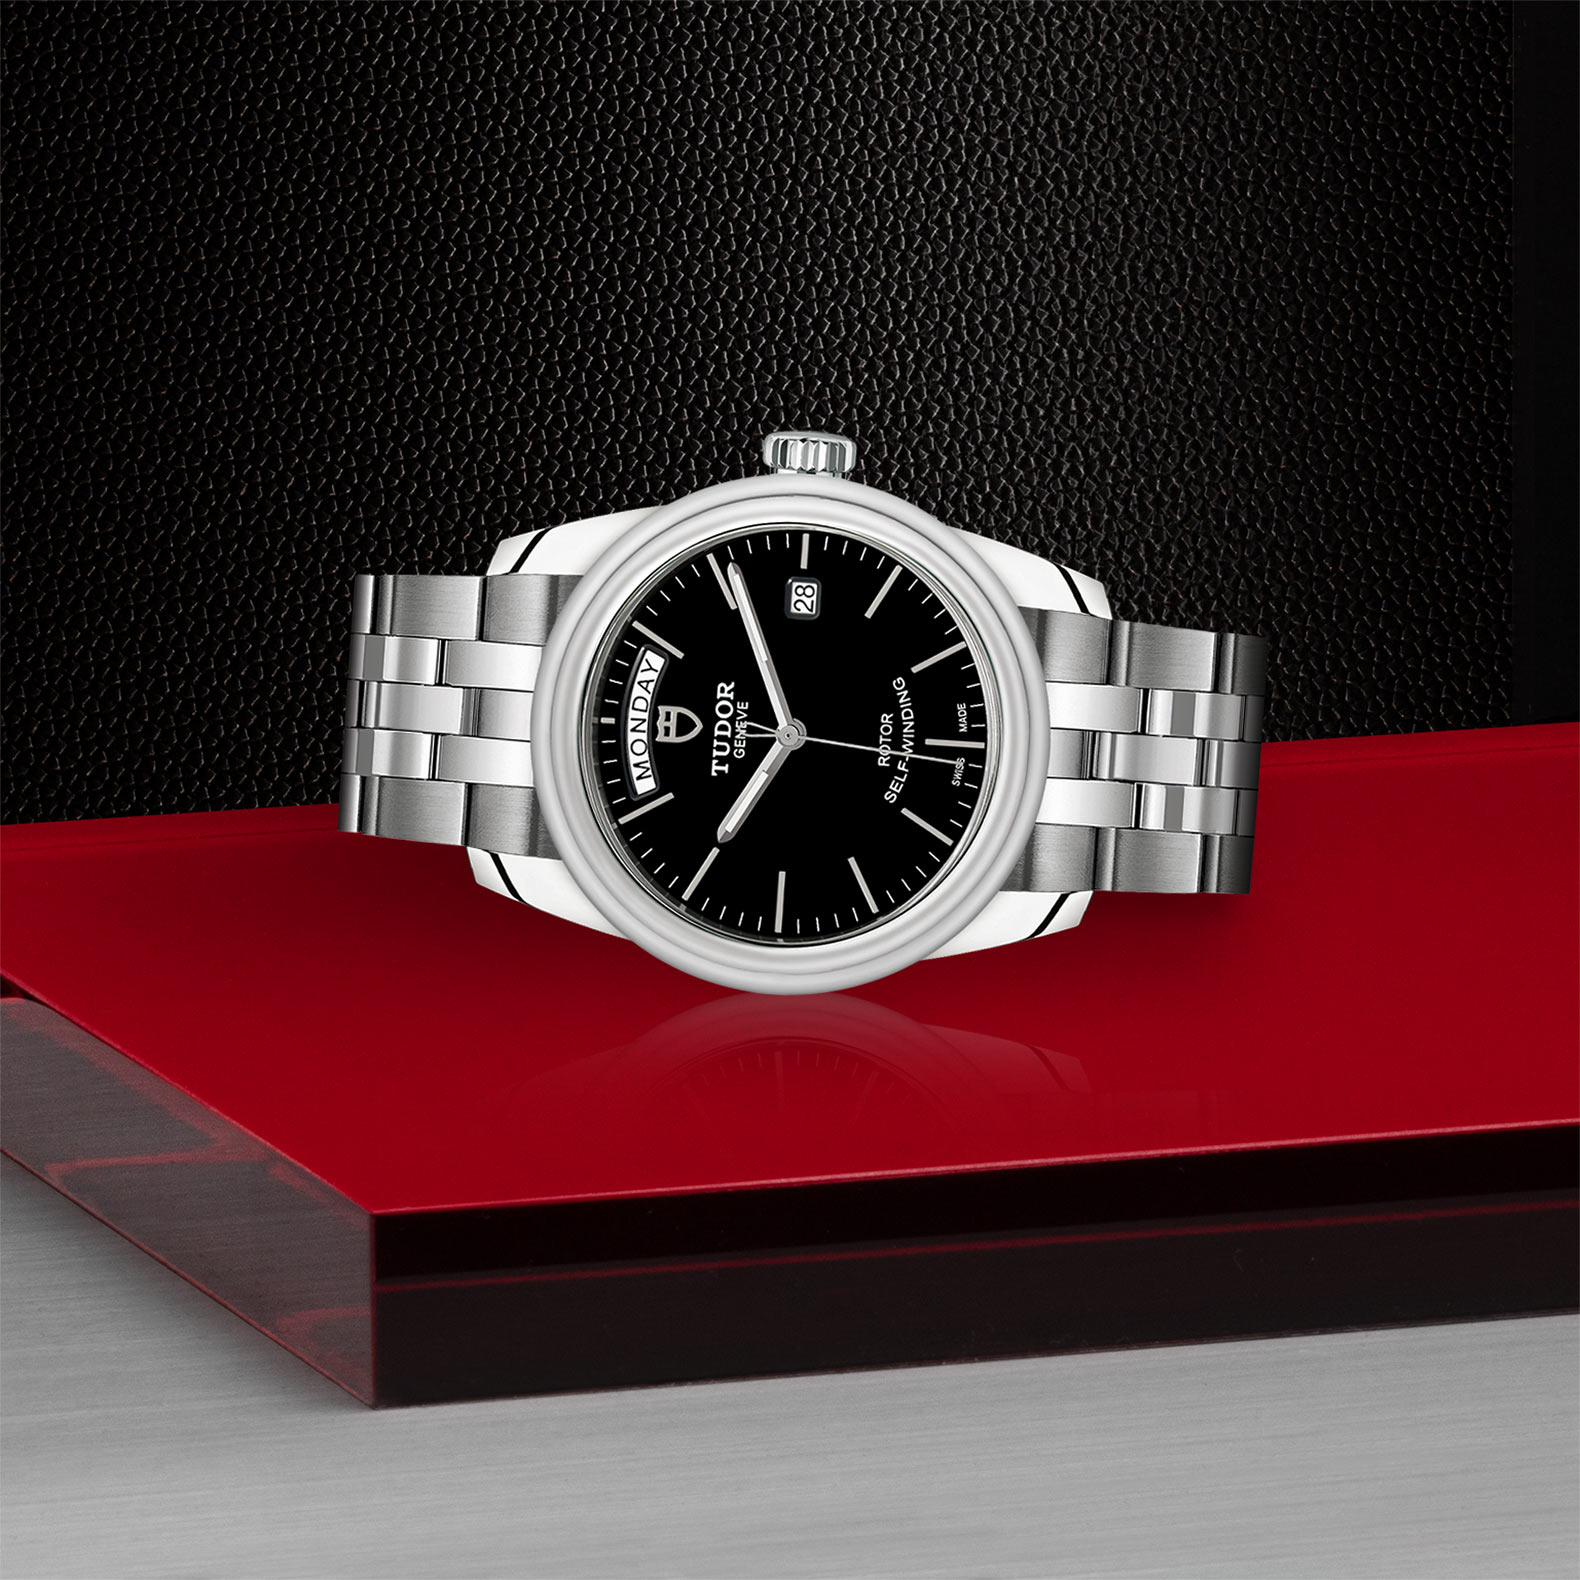 TUDOR Glamour Date+Day - M56000-0007